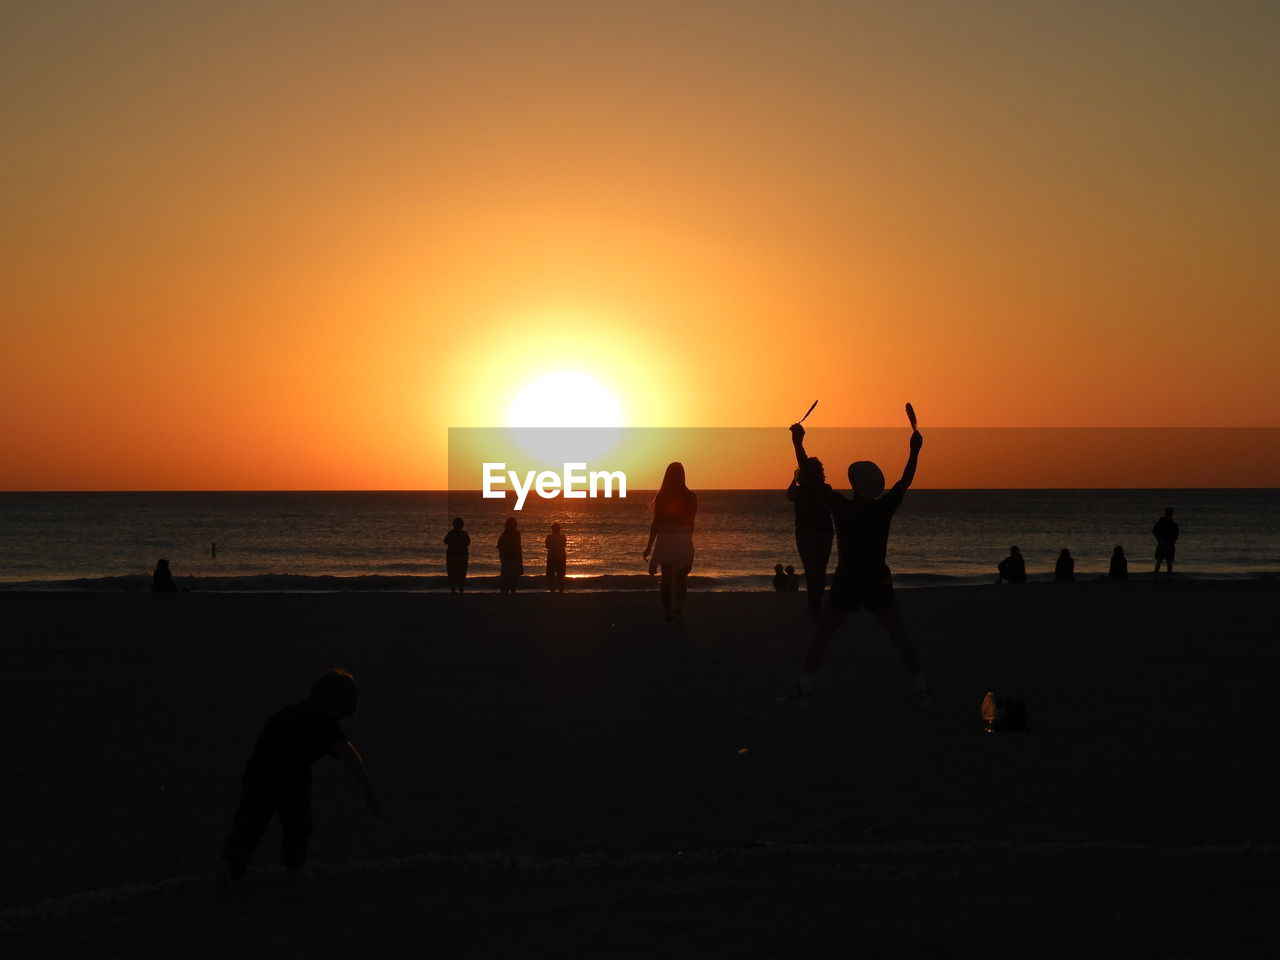 sunset, sun, silhouette, beach, nature, orange color, beauty in nature, sea, real people, leisure activity, scenics, lifestyles, water, horizon over water, vacations, beach volleyball, enjoyment, fun, playing, net - sports equipment, volleyball - sport, sunlight, weekend activities, sky, outdoors, men, large group of people, togetherness, people